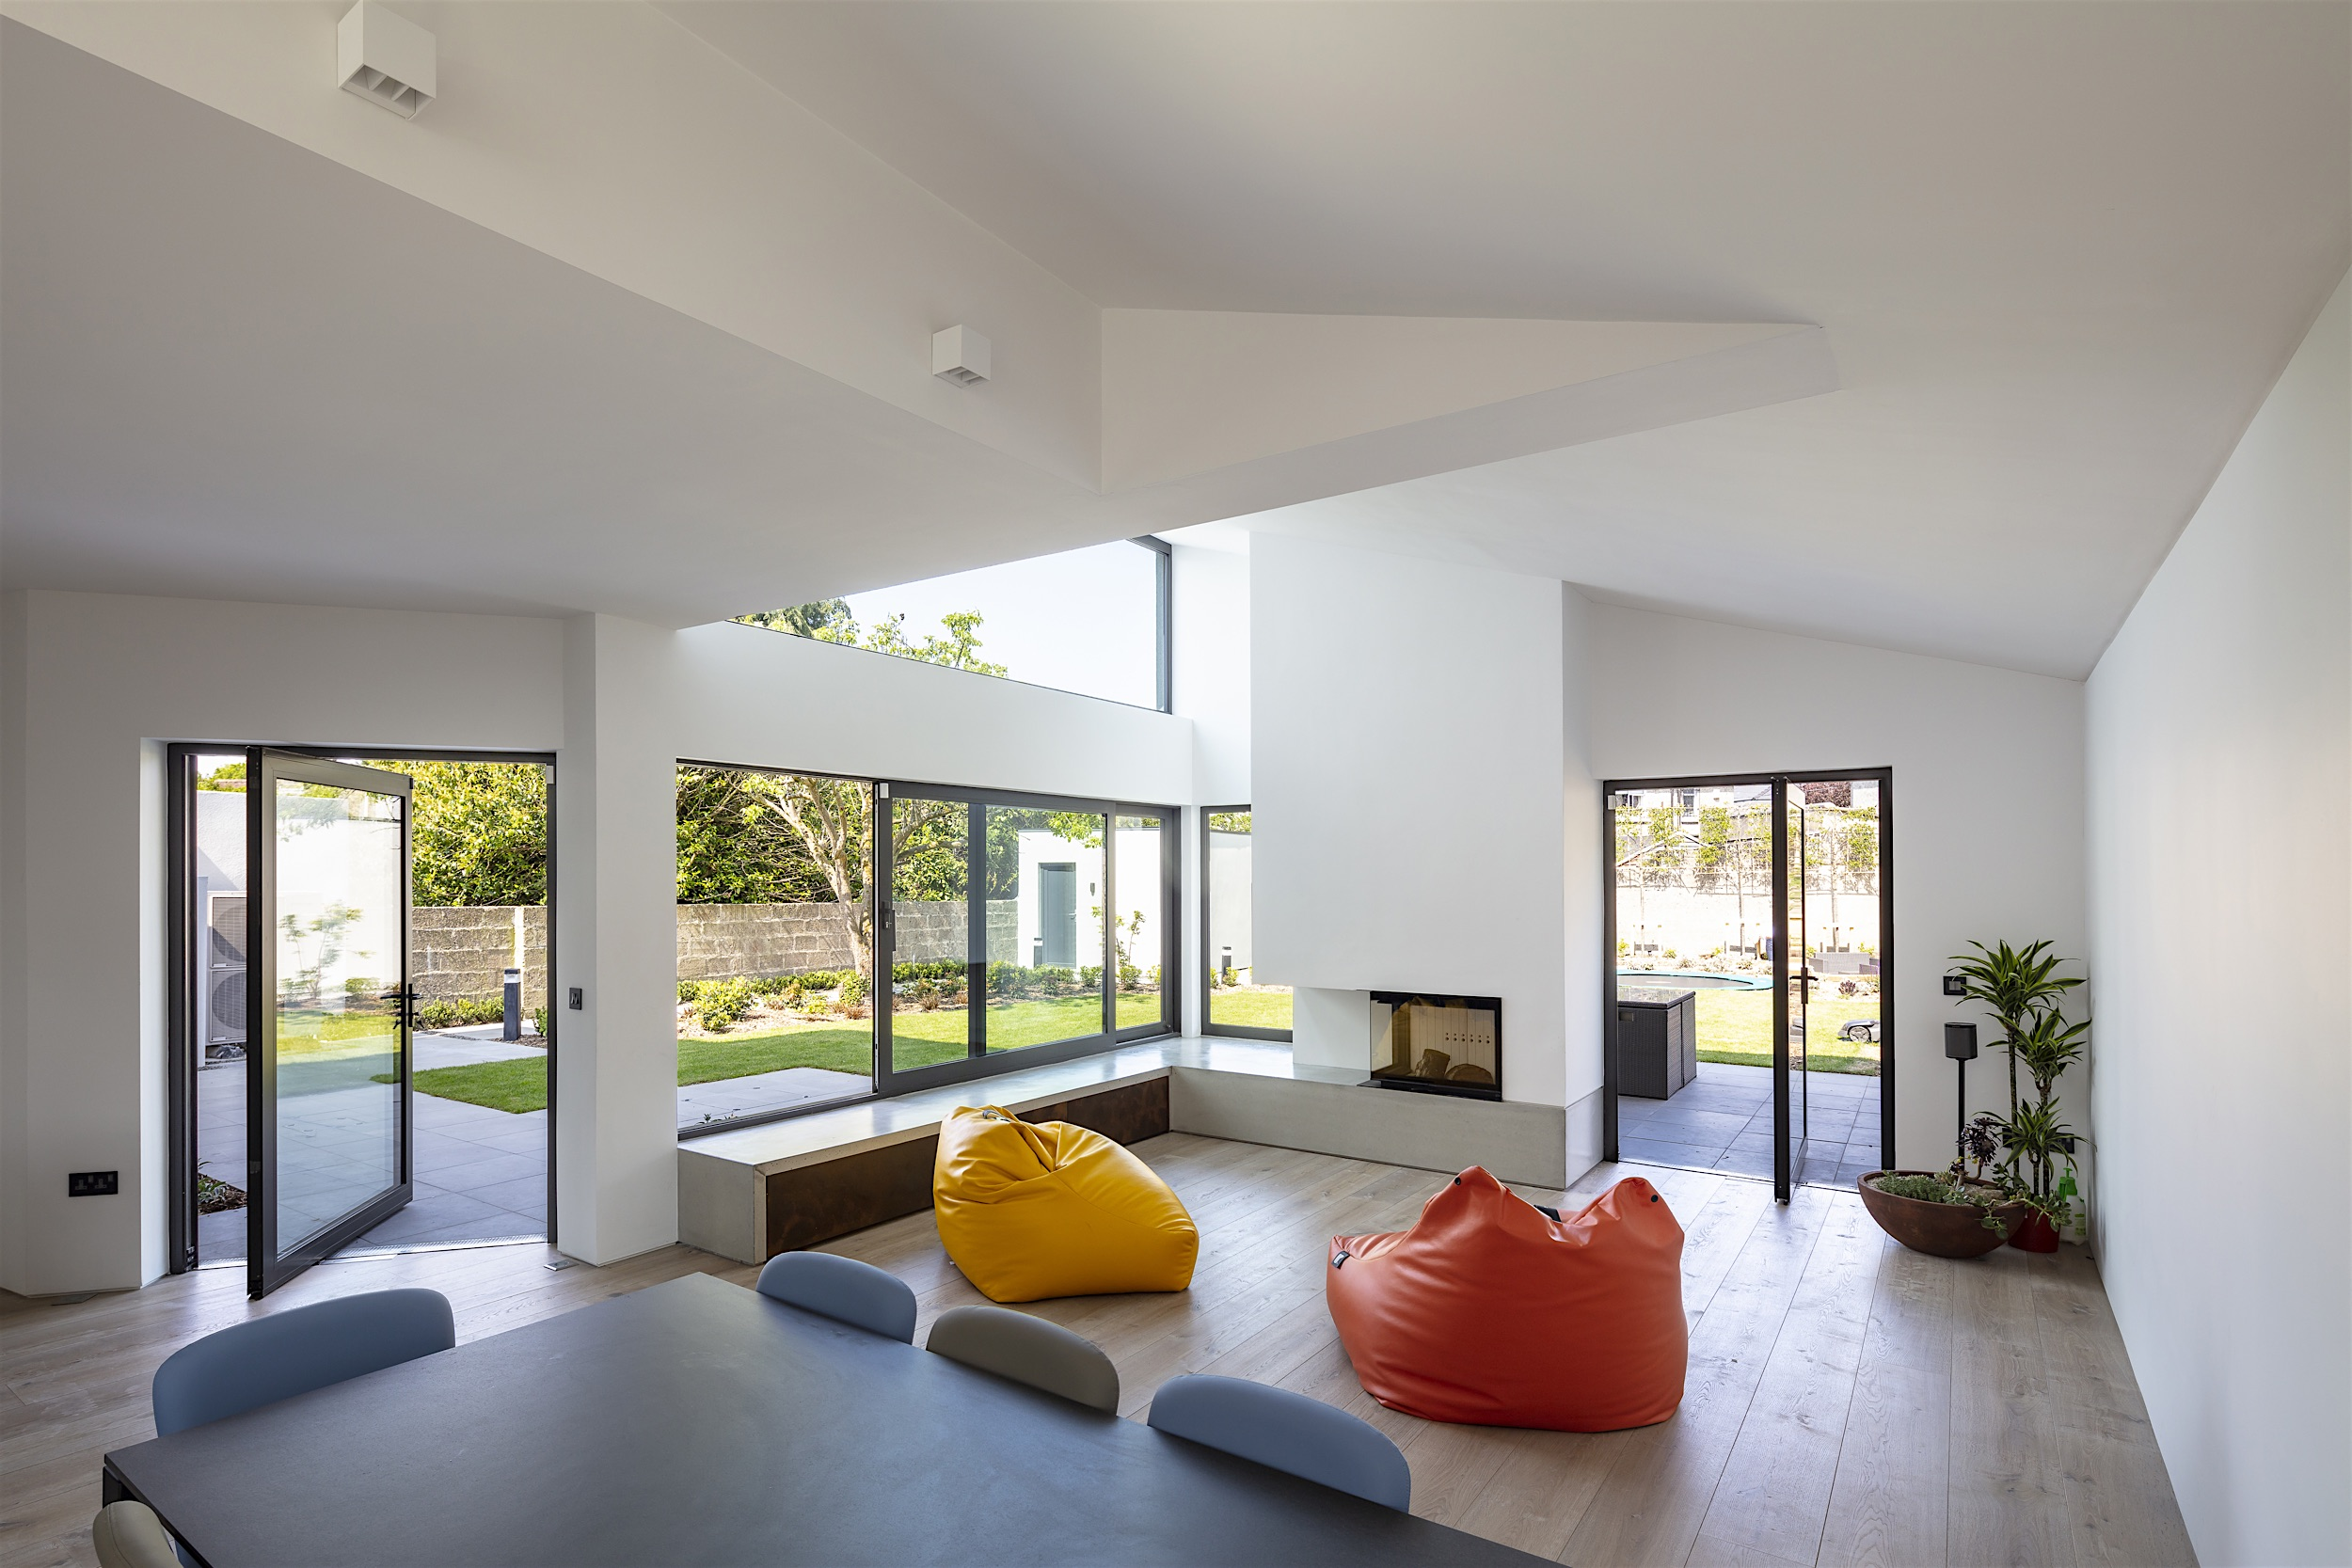 BRENNAN_FURLONG_RENOVATION_EXTENSION_HOMEFARM_PARK_DRUMCONDRA (3).jpg